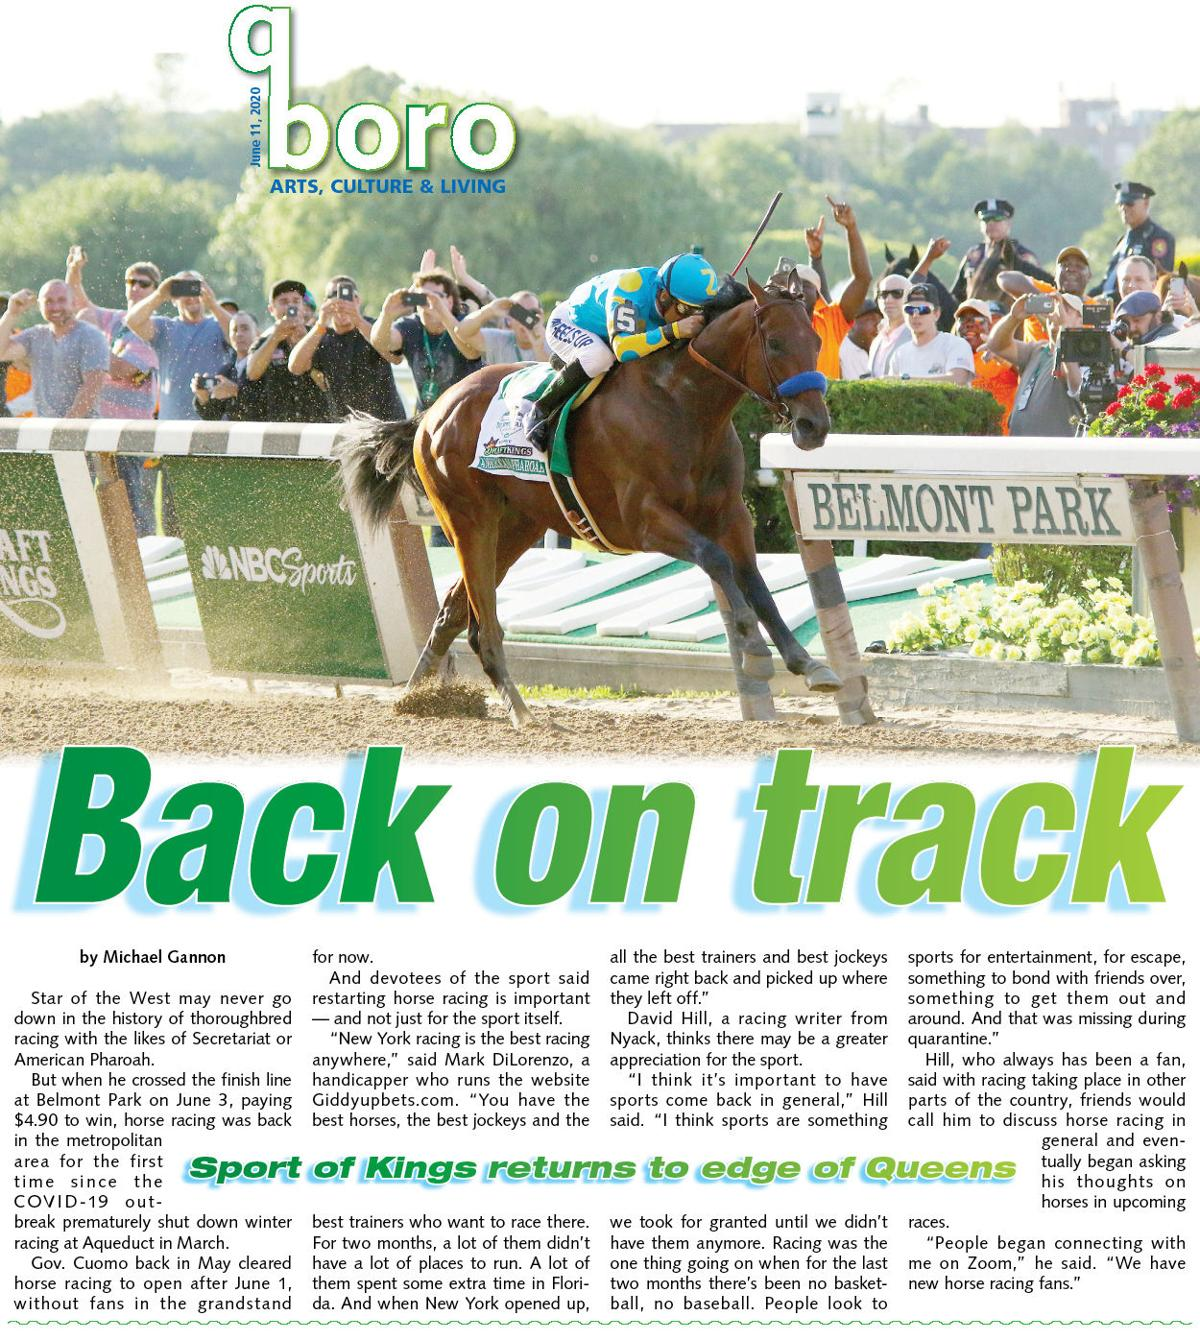 Is Belmont's comeback a boost? You bet! 1